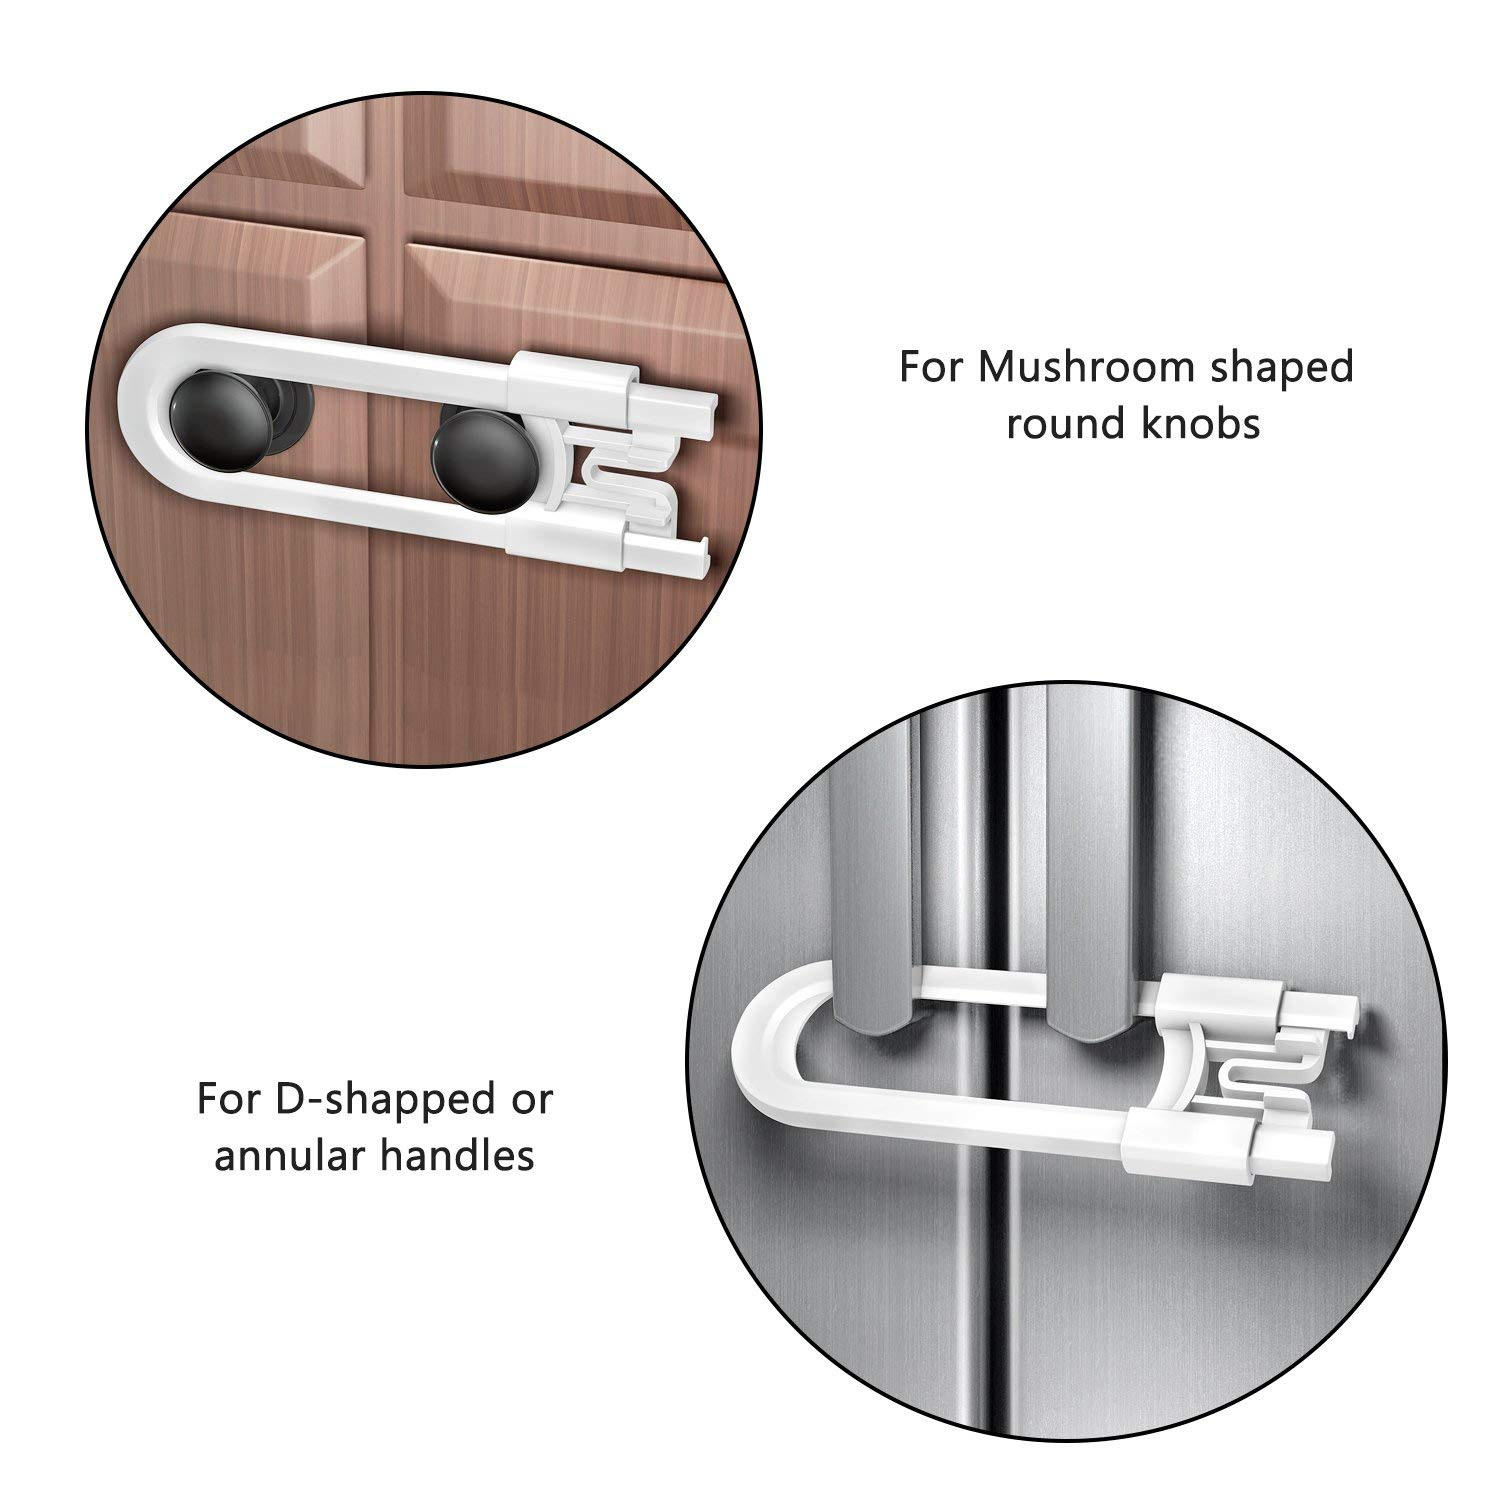 U Shaped Baby Safety Locks Childproof Cabinet Latch for Kitchen Bathroom Storage Doors 4-Pack, White Adoric Sliding Cabinet Locks Knobs and Handles